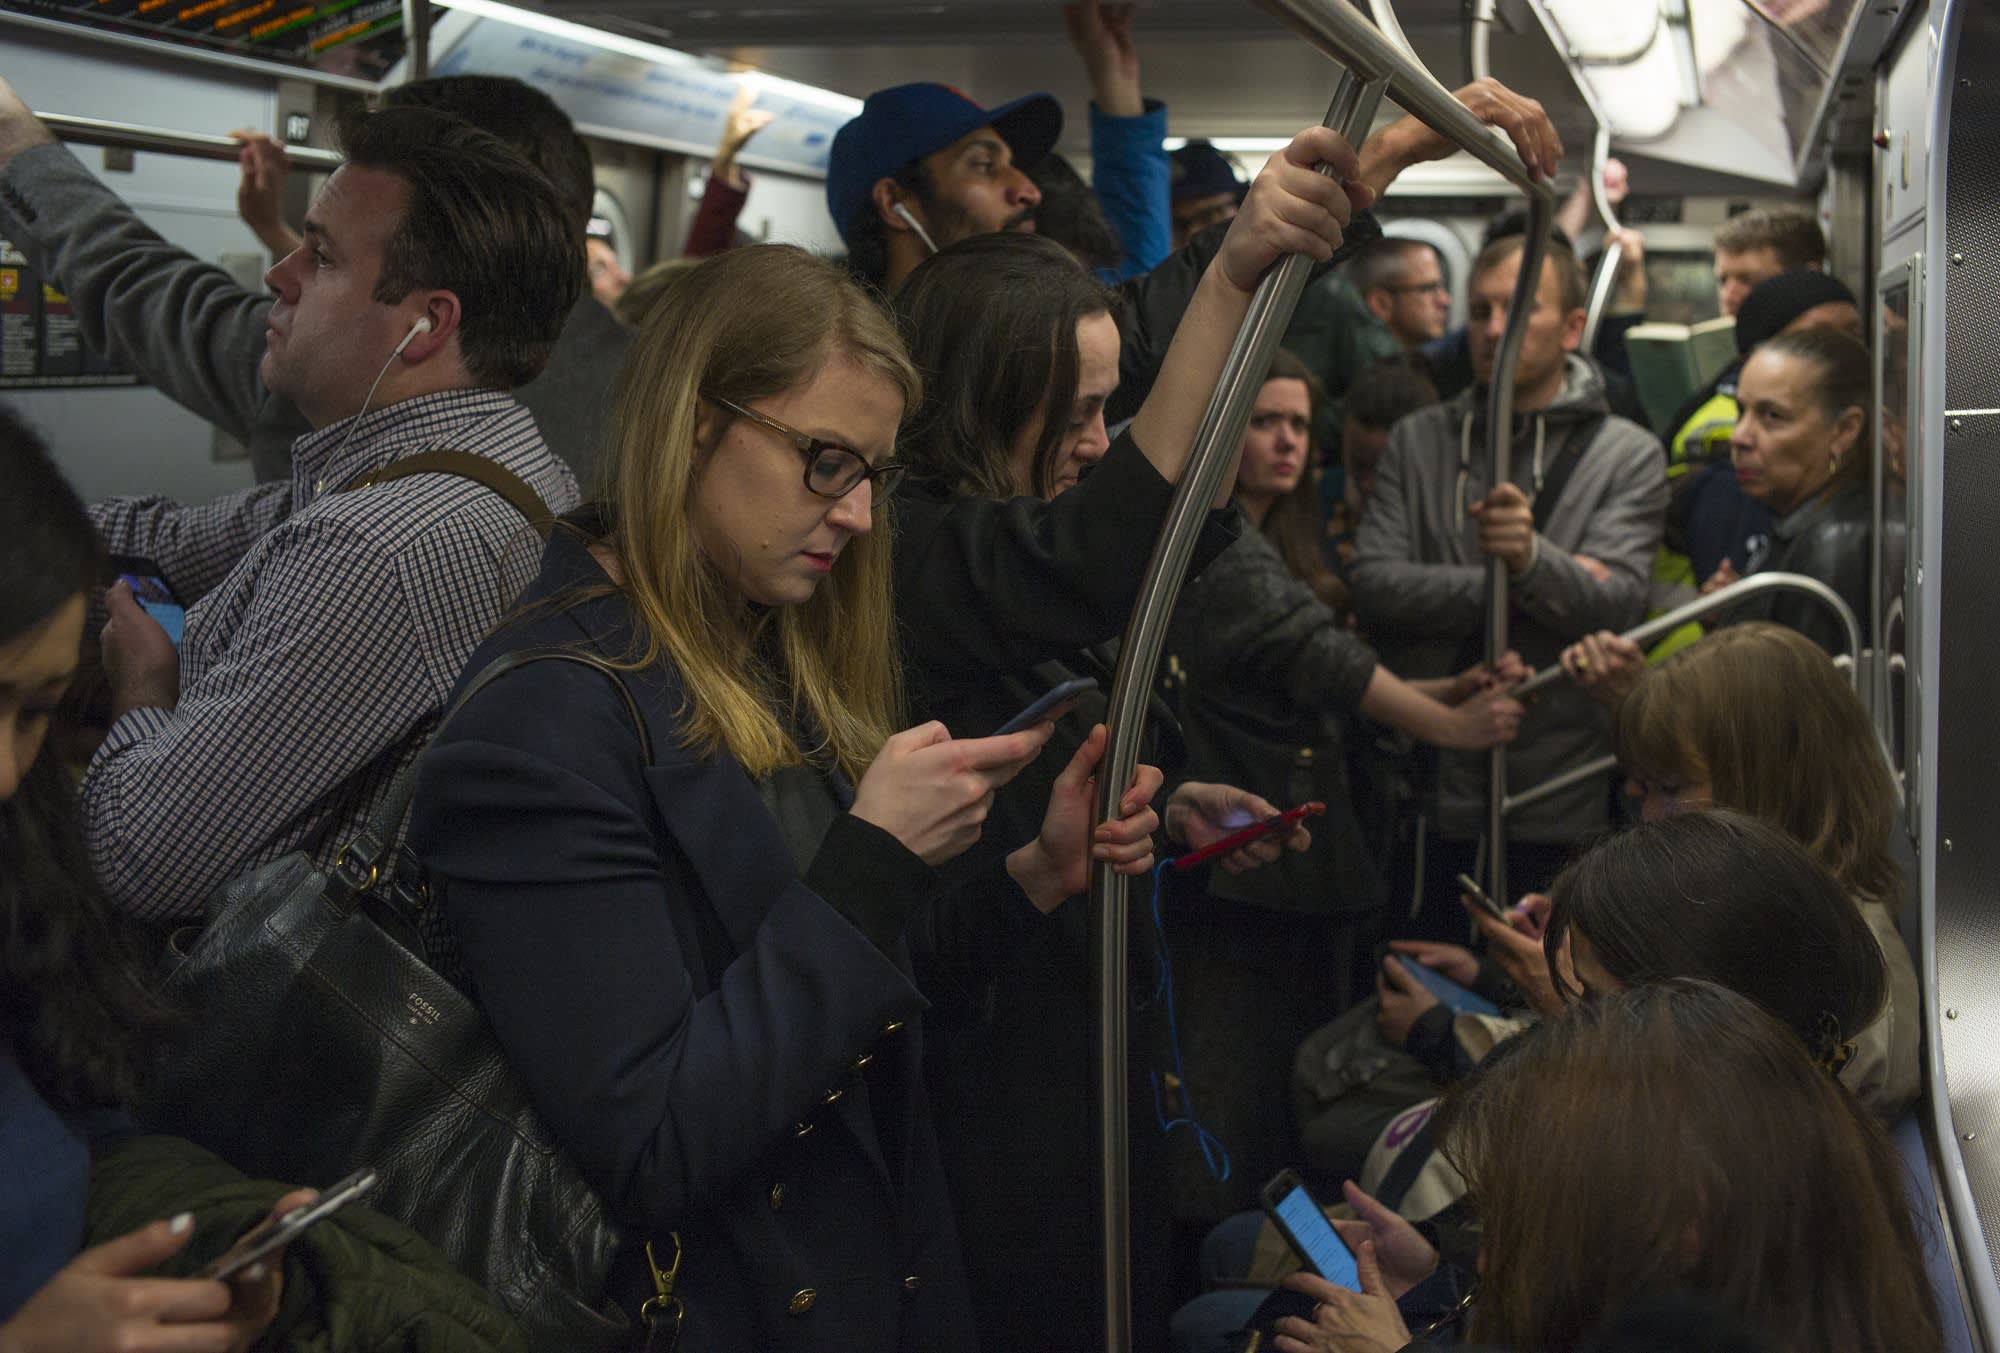 Google Maps will now help you avoid bumping into sweaty strangers on the bus